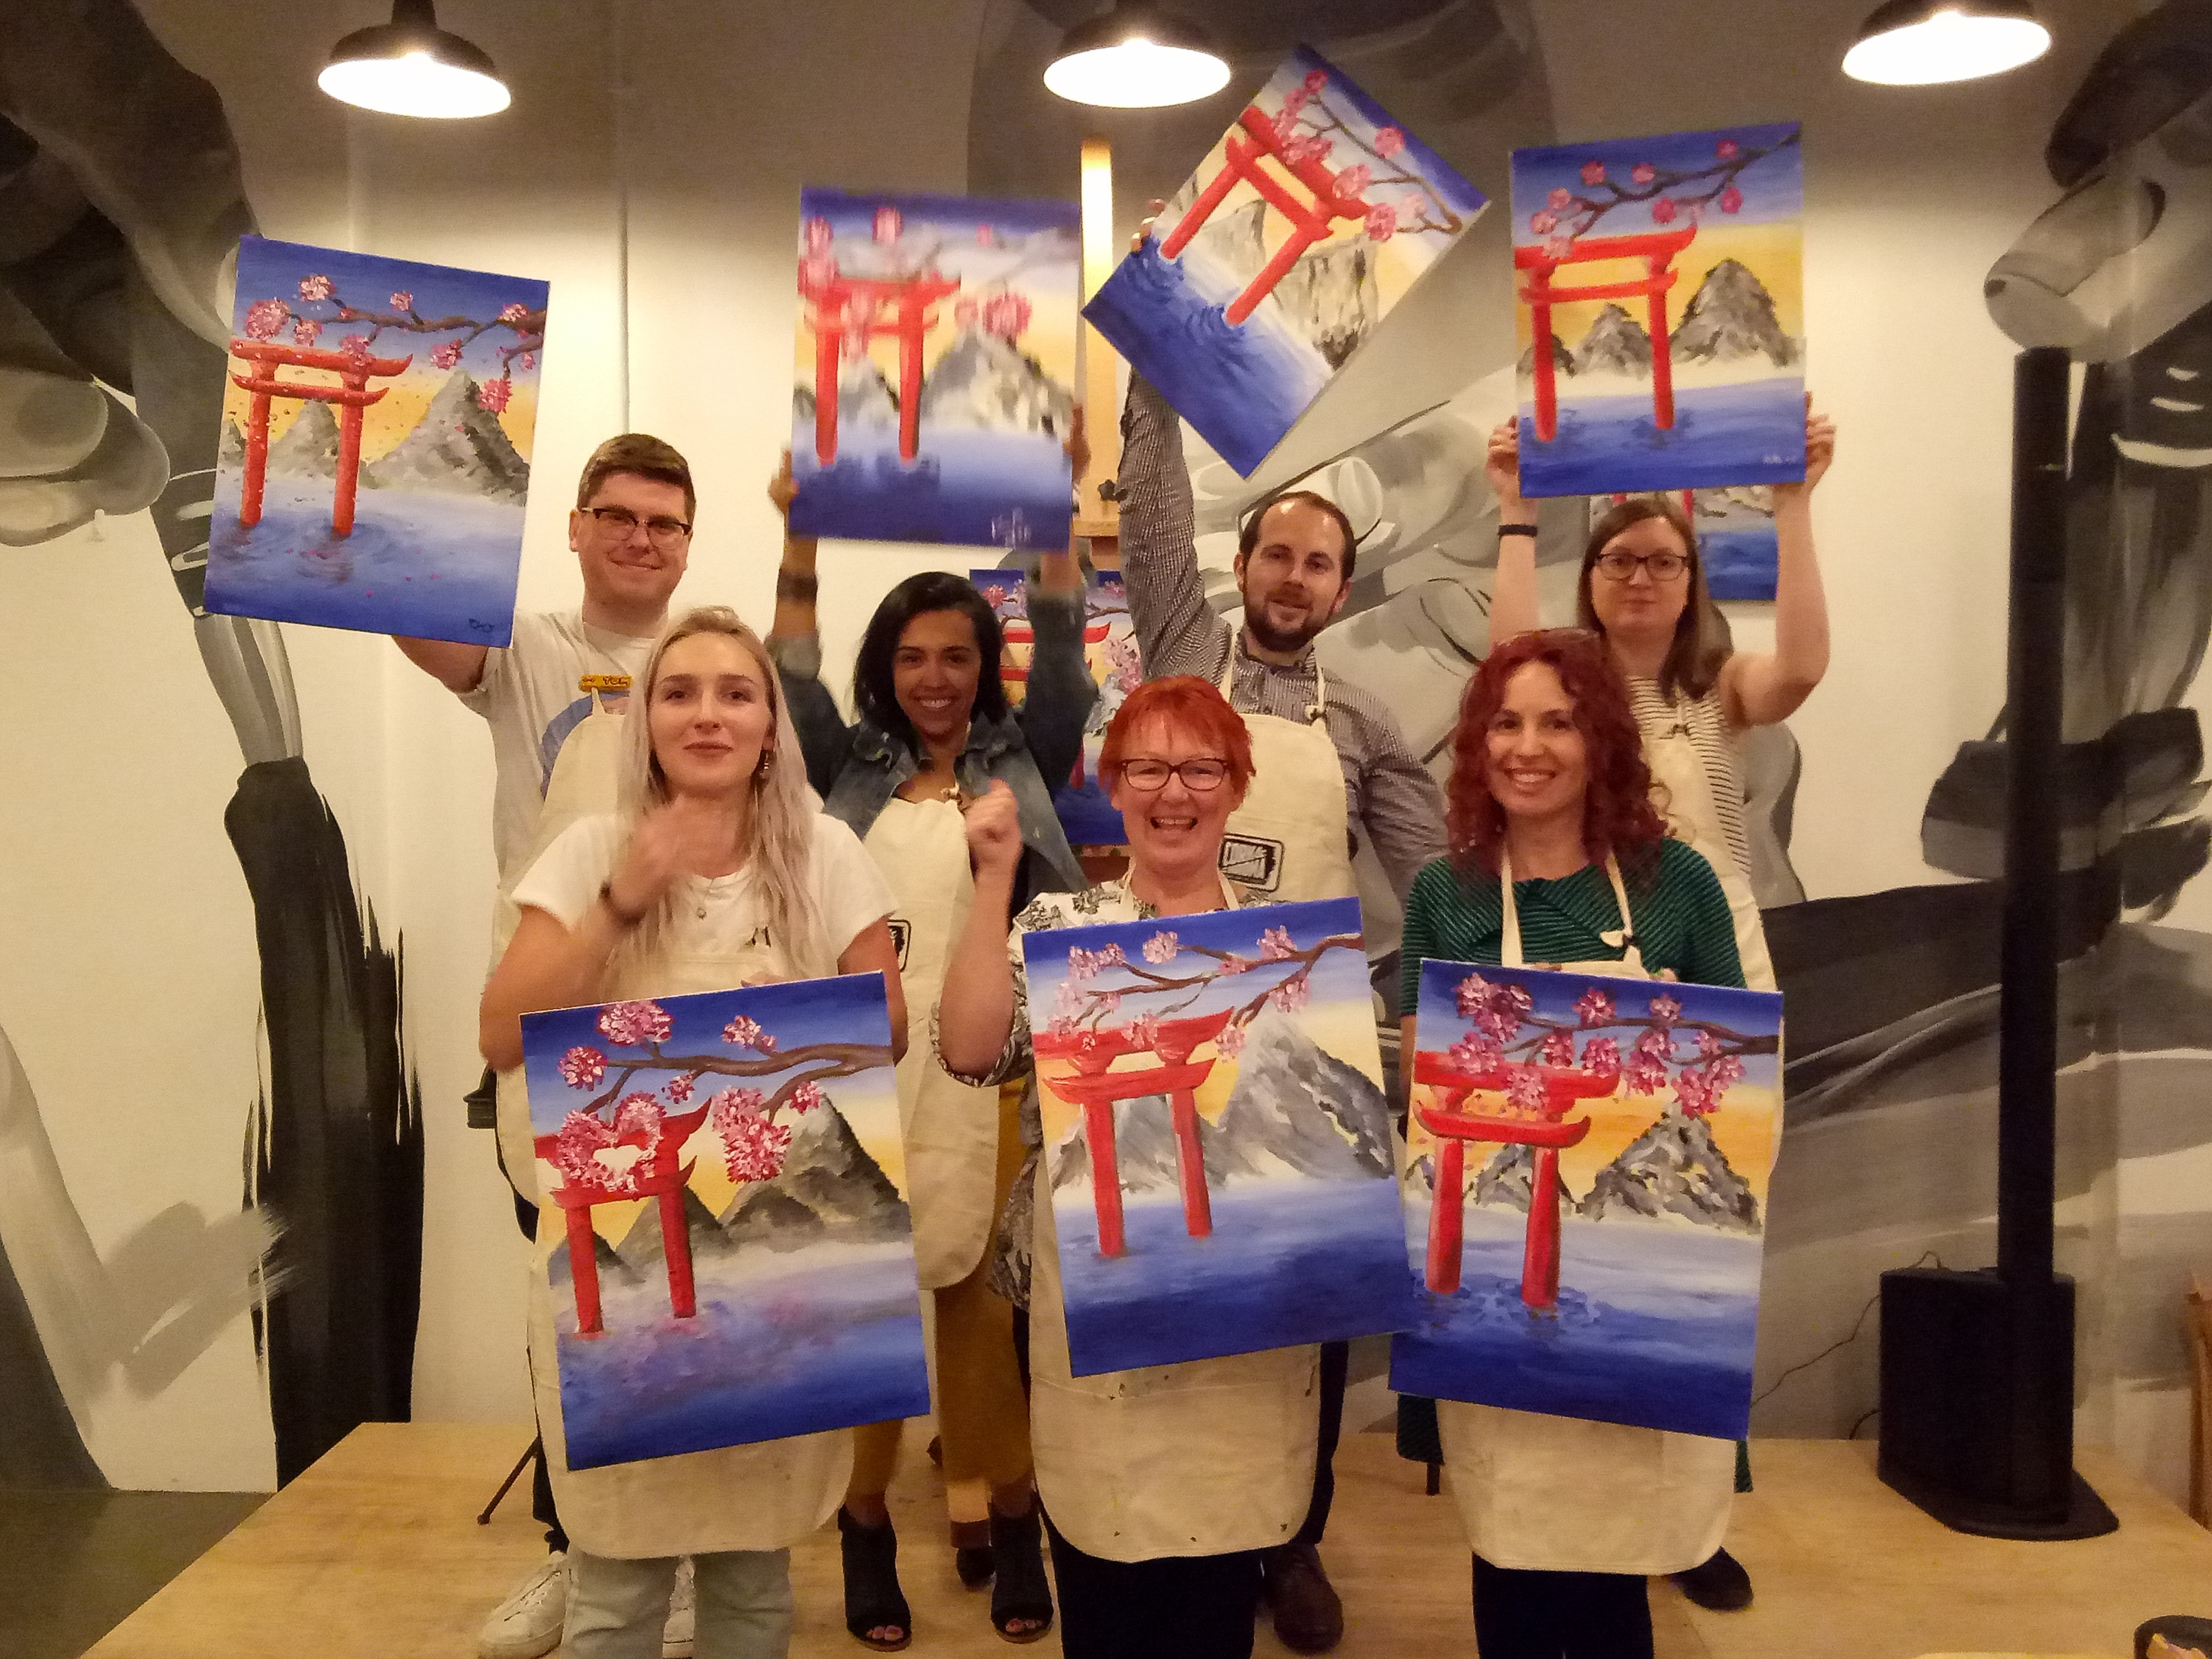 Cork chroma a paint and sip studio melbourne for Sip and paint houston